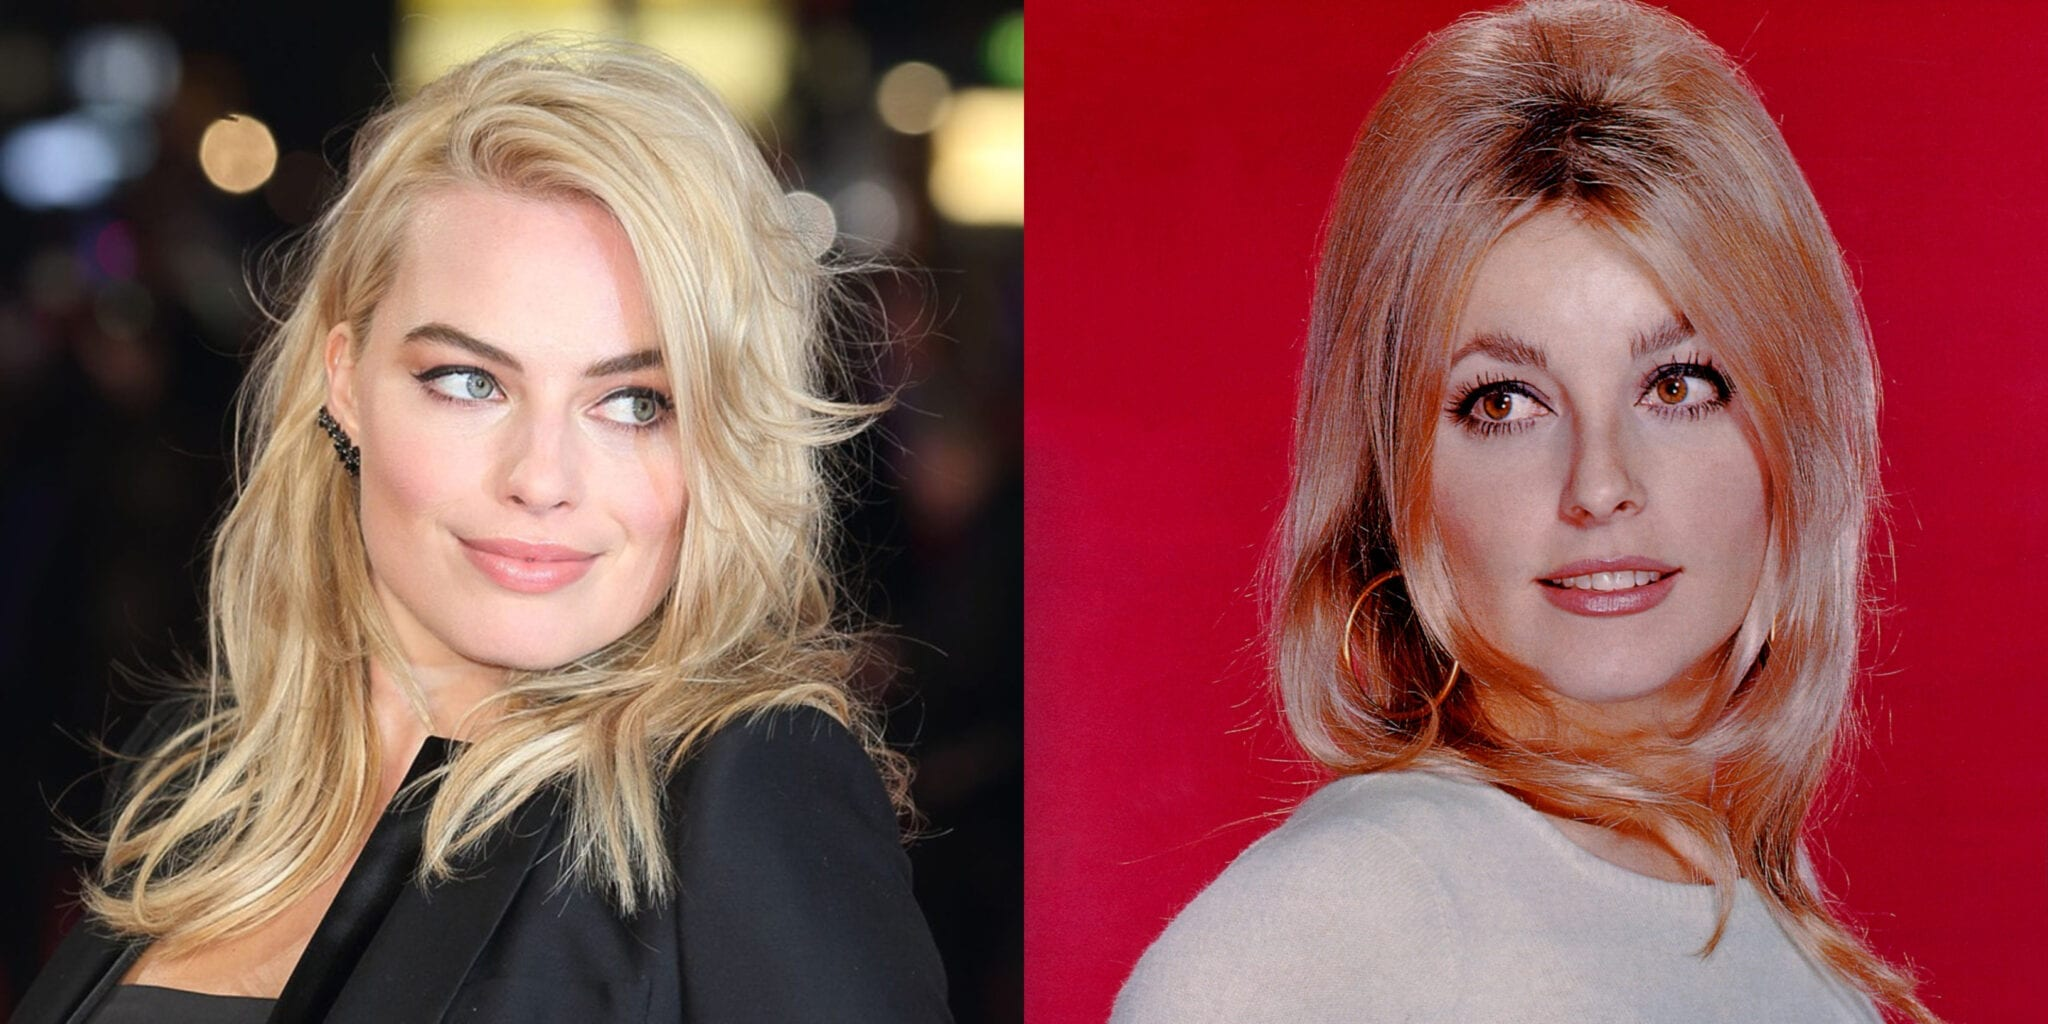 Film News: See the first photo of Margot Robbie as Sharon Tate in the upcoming Tarantino film